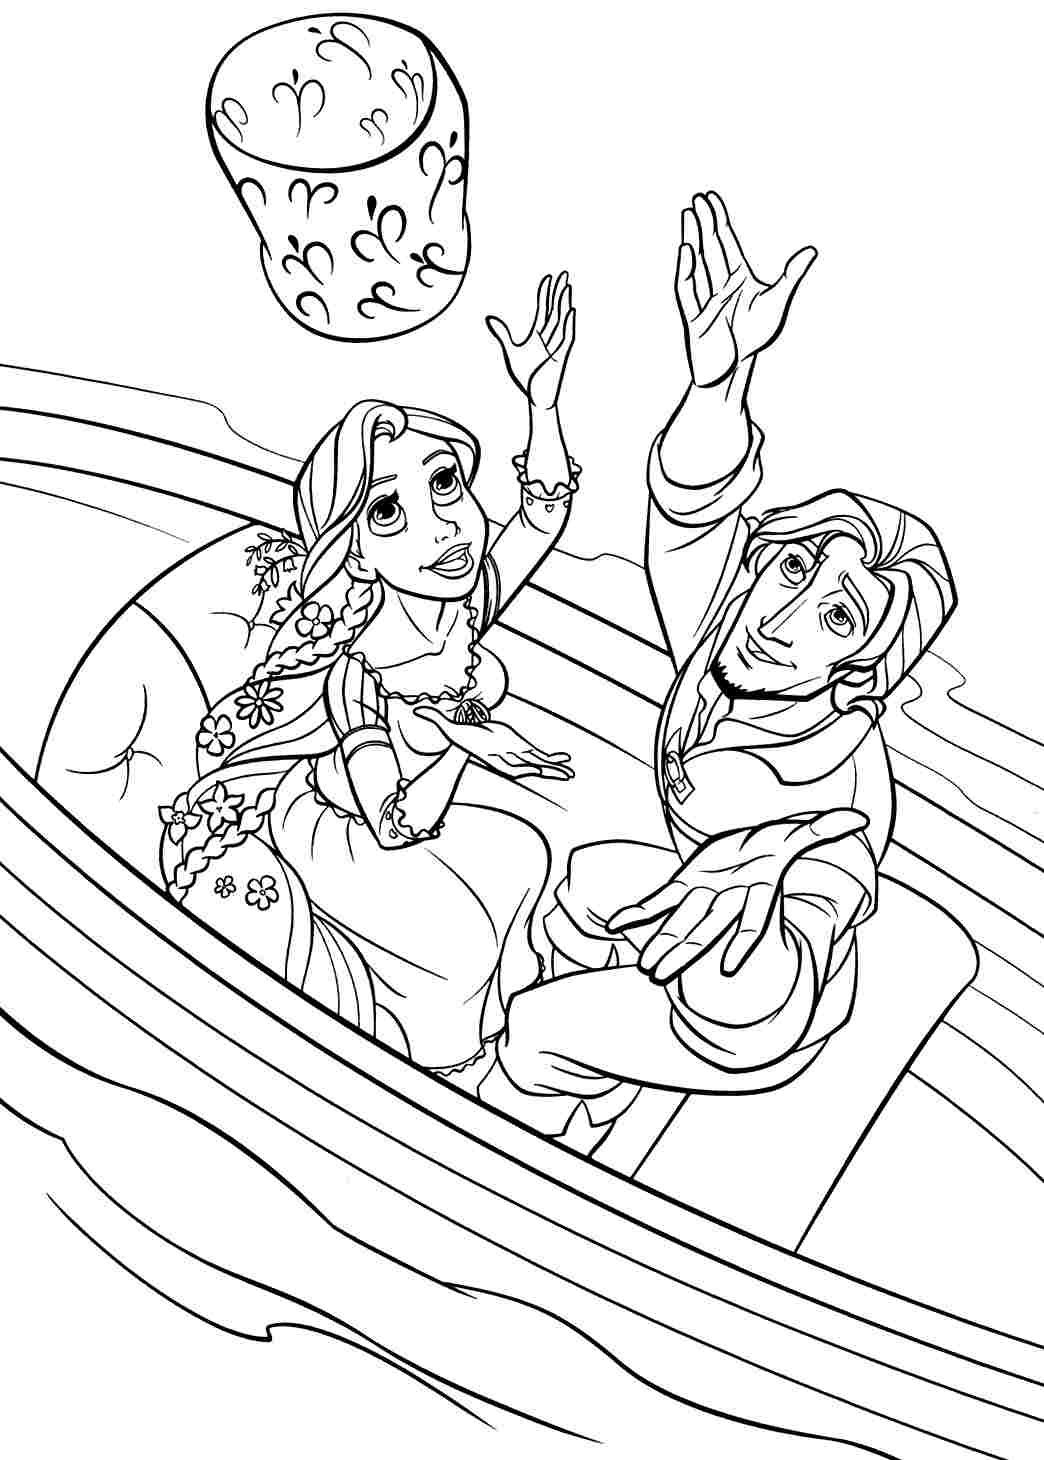 Free Printable Disney Princess Tangled Rapunzel Colouring Pages For - Free Printable Tangled